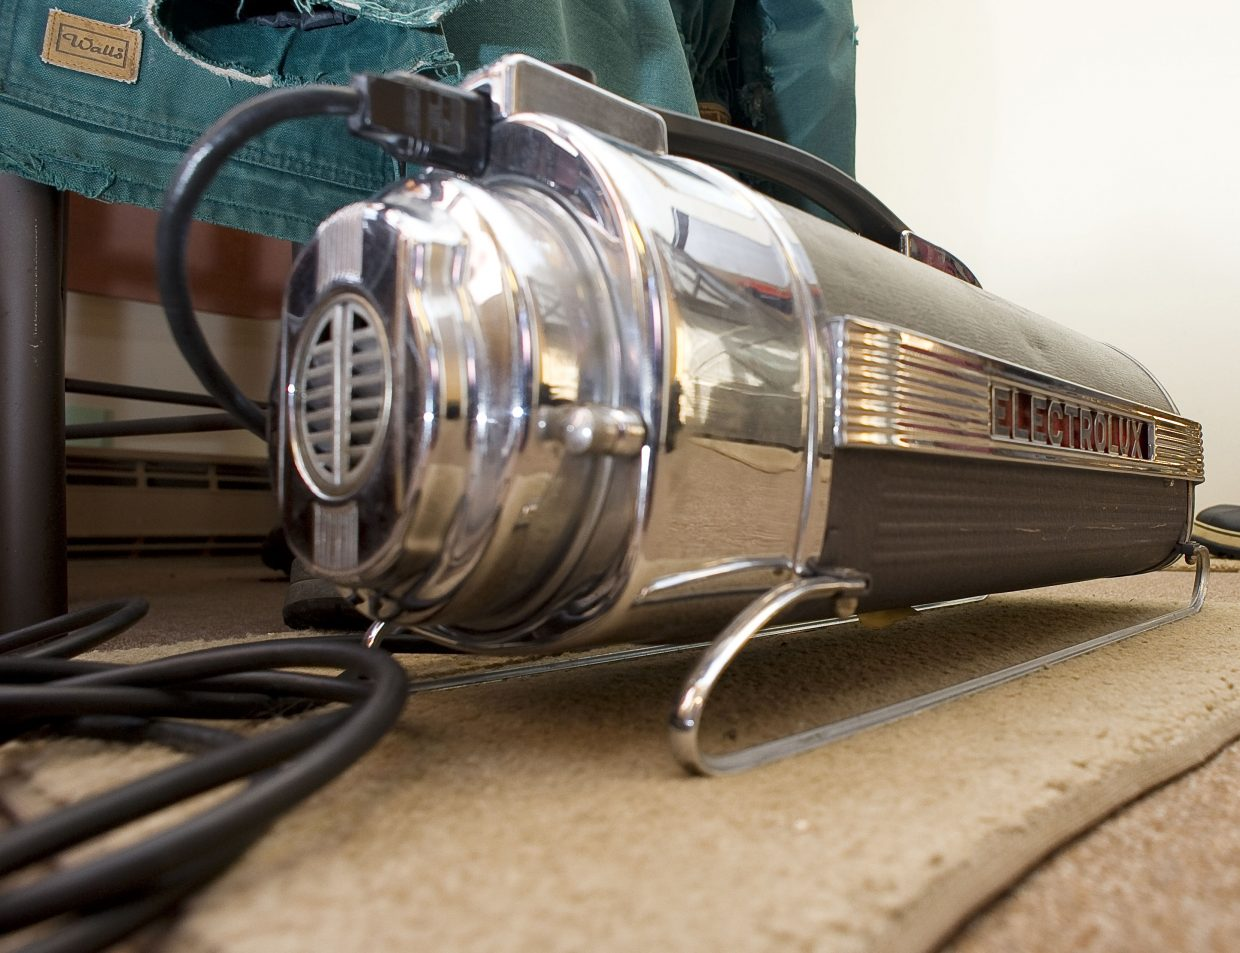 This Electrolux vacuum cleaner, circa 1950, is just one of the many vintage appliances that longtime Steamboat Springs resident Bill Fetcher has rescued throughout the years.